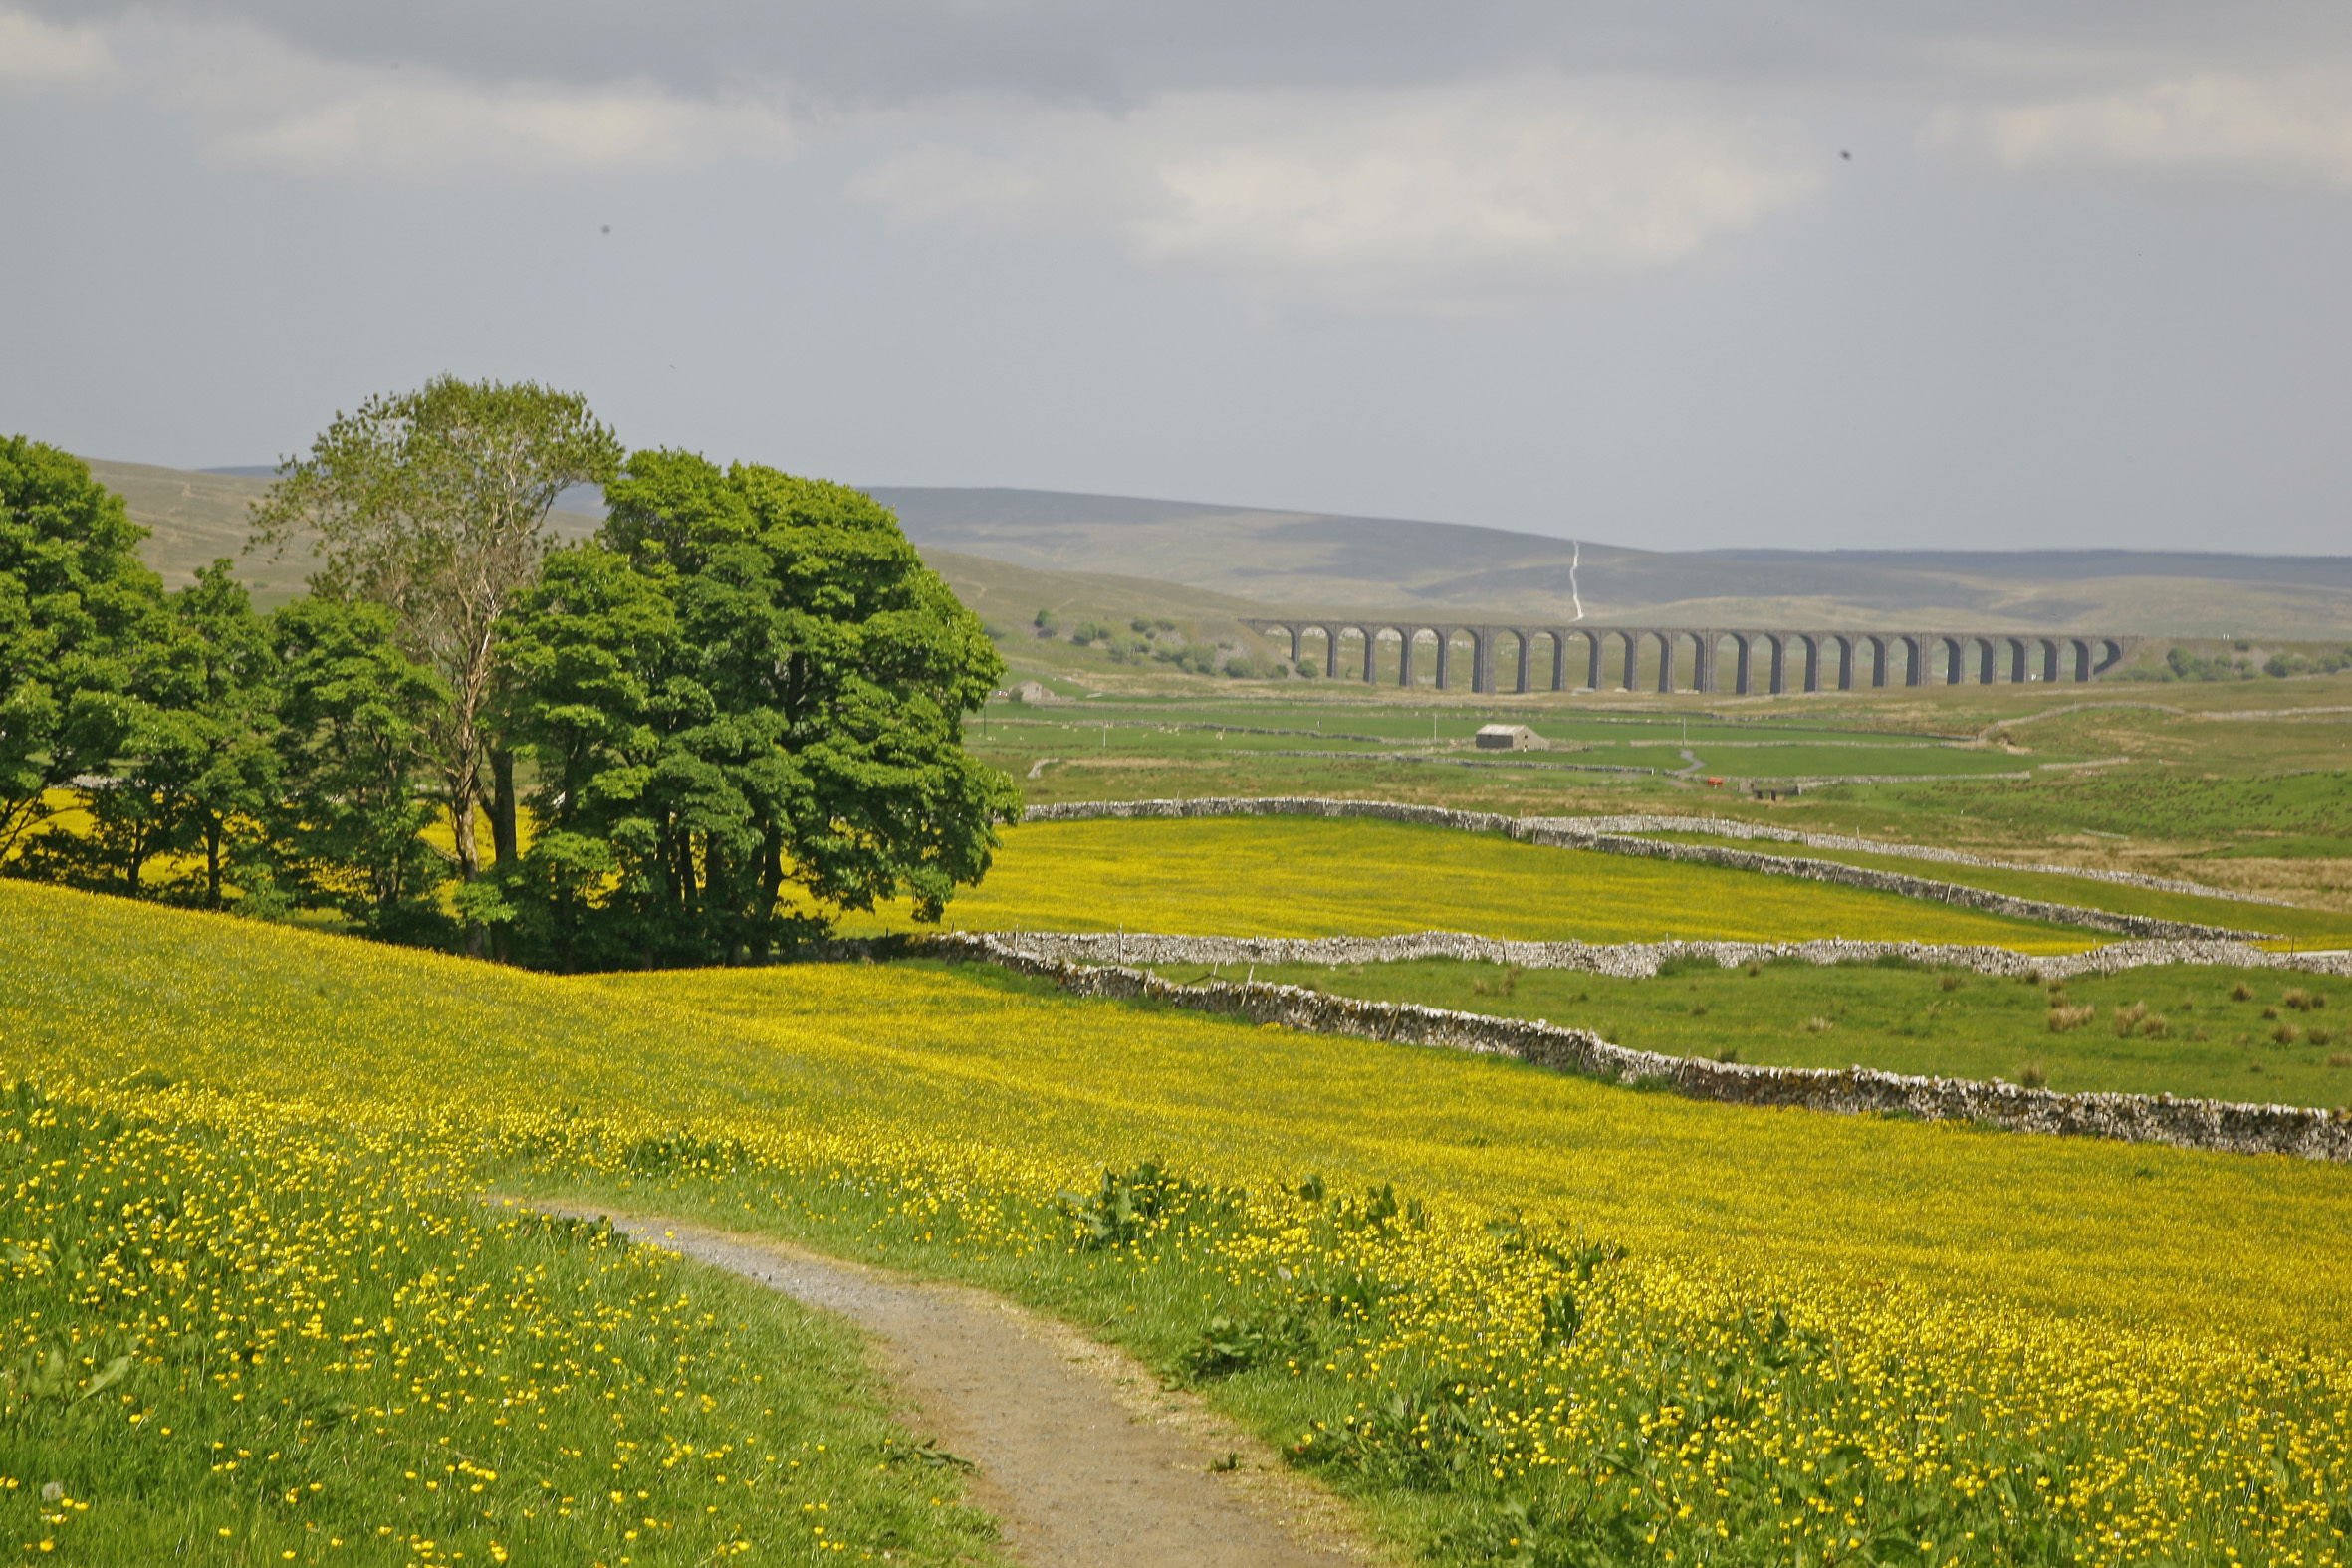 Buttercups carpet the fields near the iconic Ribblehead Viaduct. Picture by Philip Winstanley